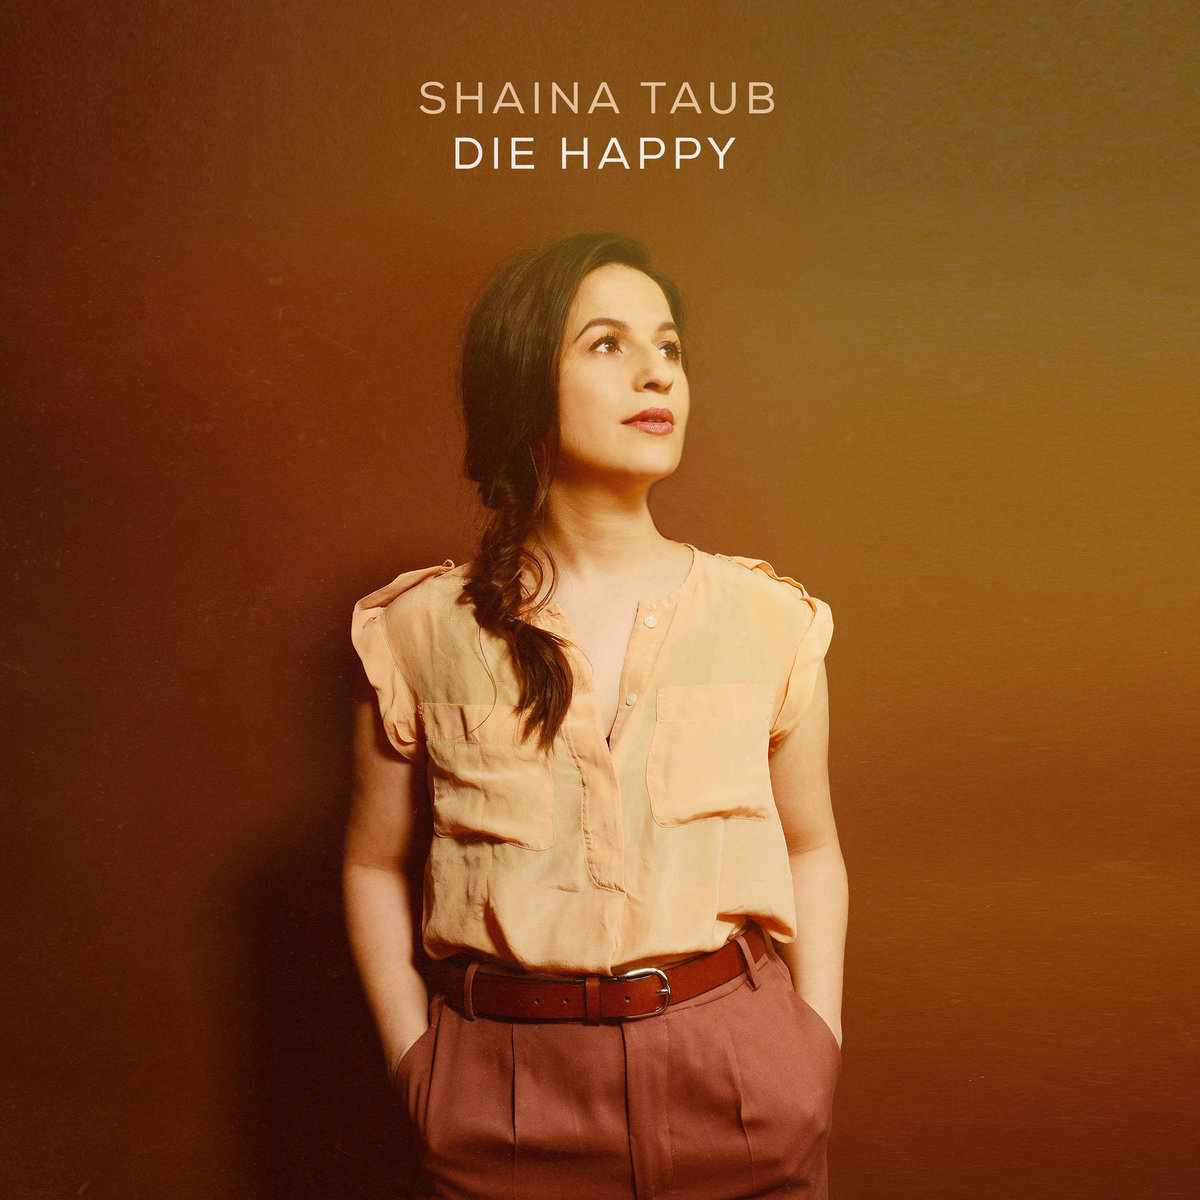 If I Die Before You Shaina Taub